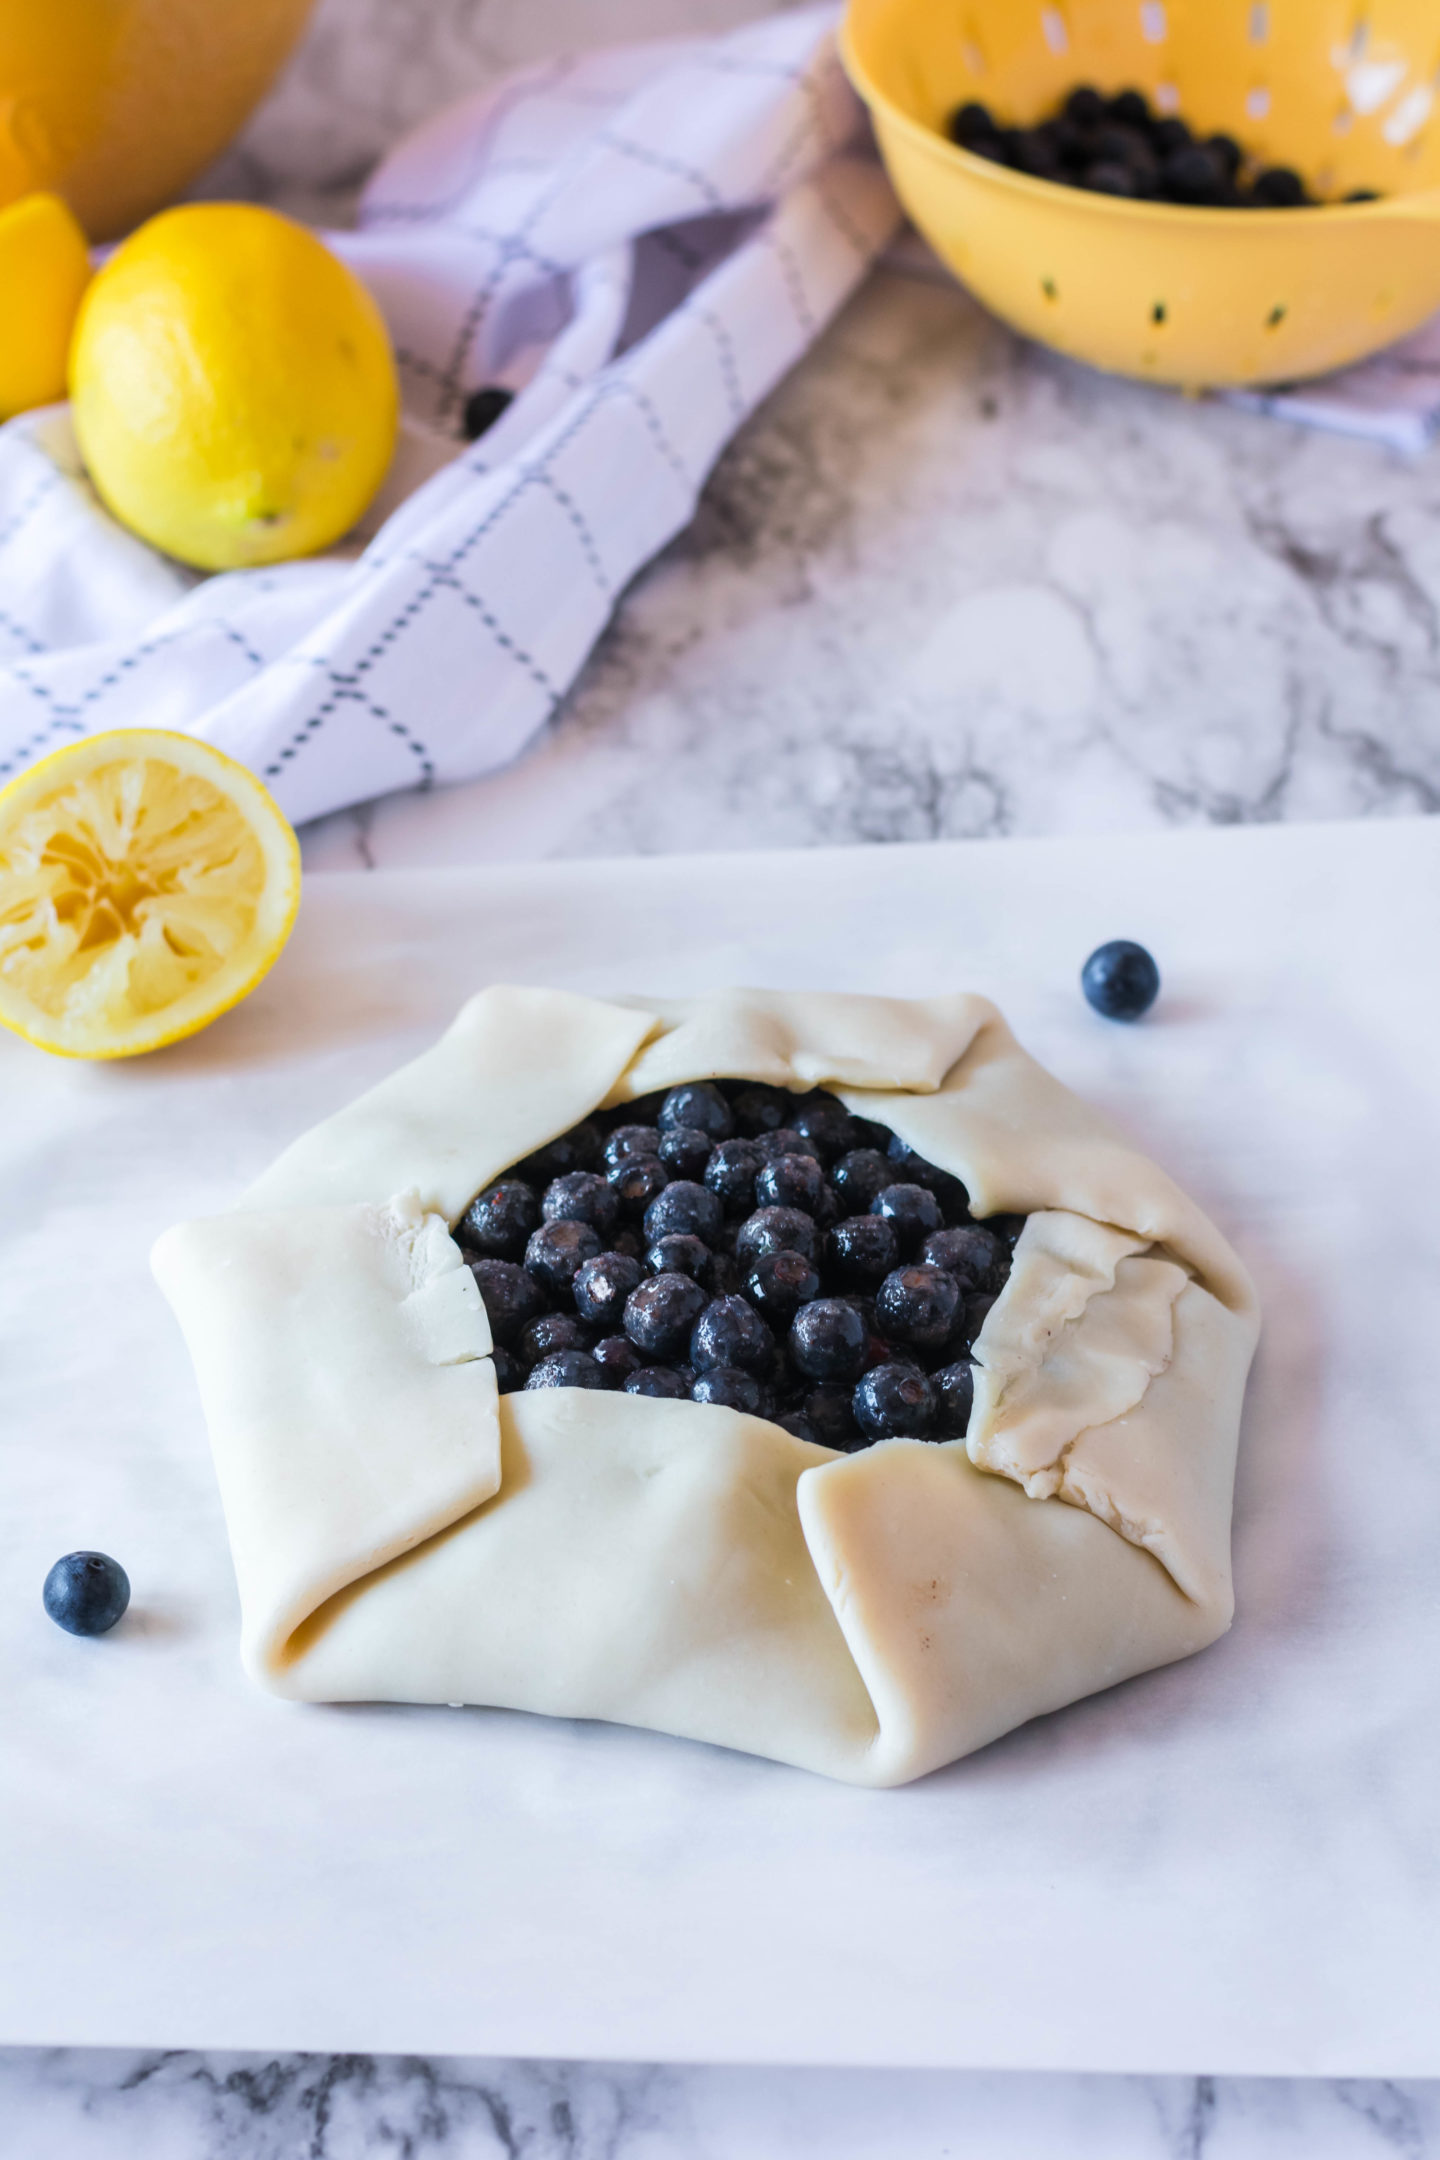 A rustic blueberry tart ready to be baked.